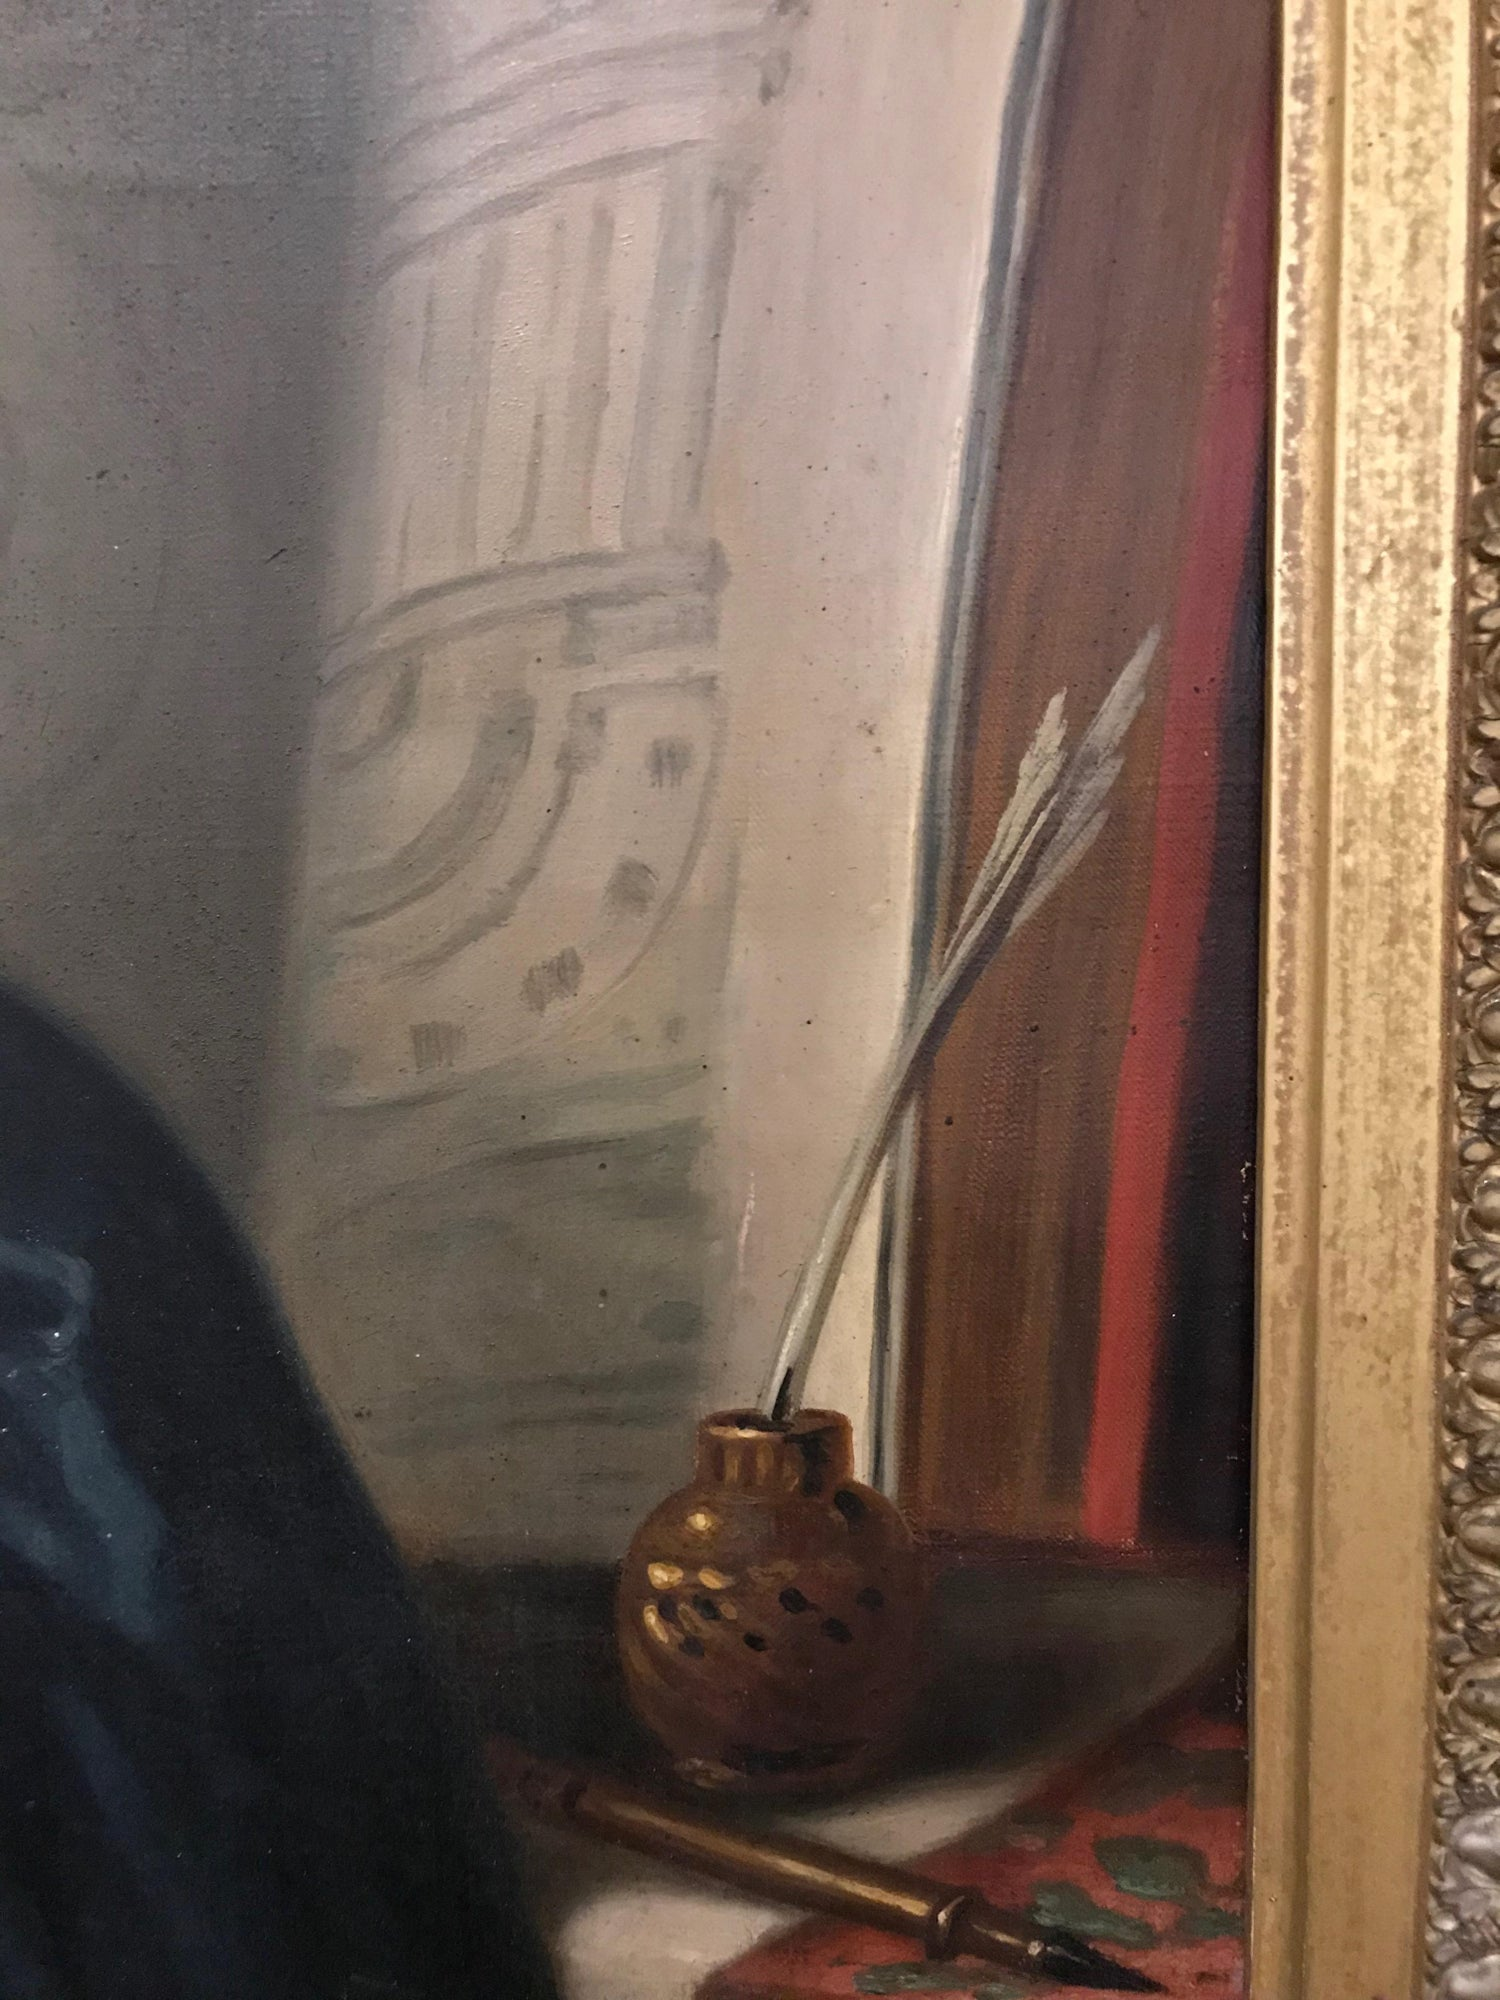 8 5 Foot Tall 17th Century Portrait Oil Painting of Sir Christopher Wren